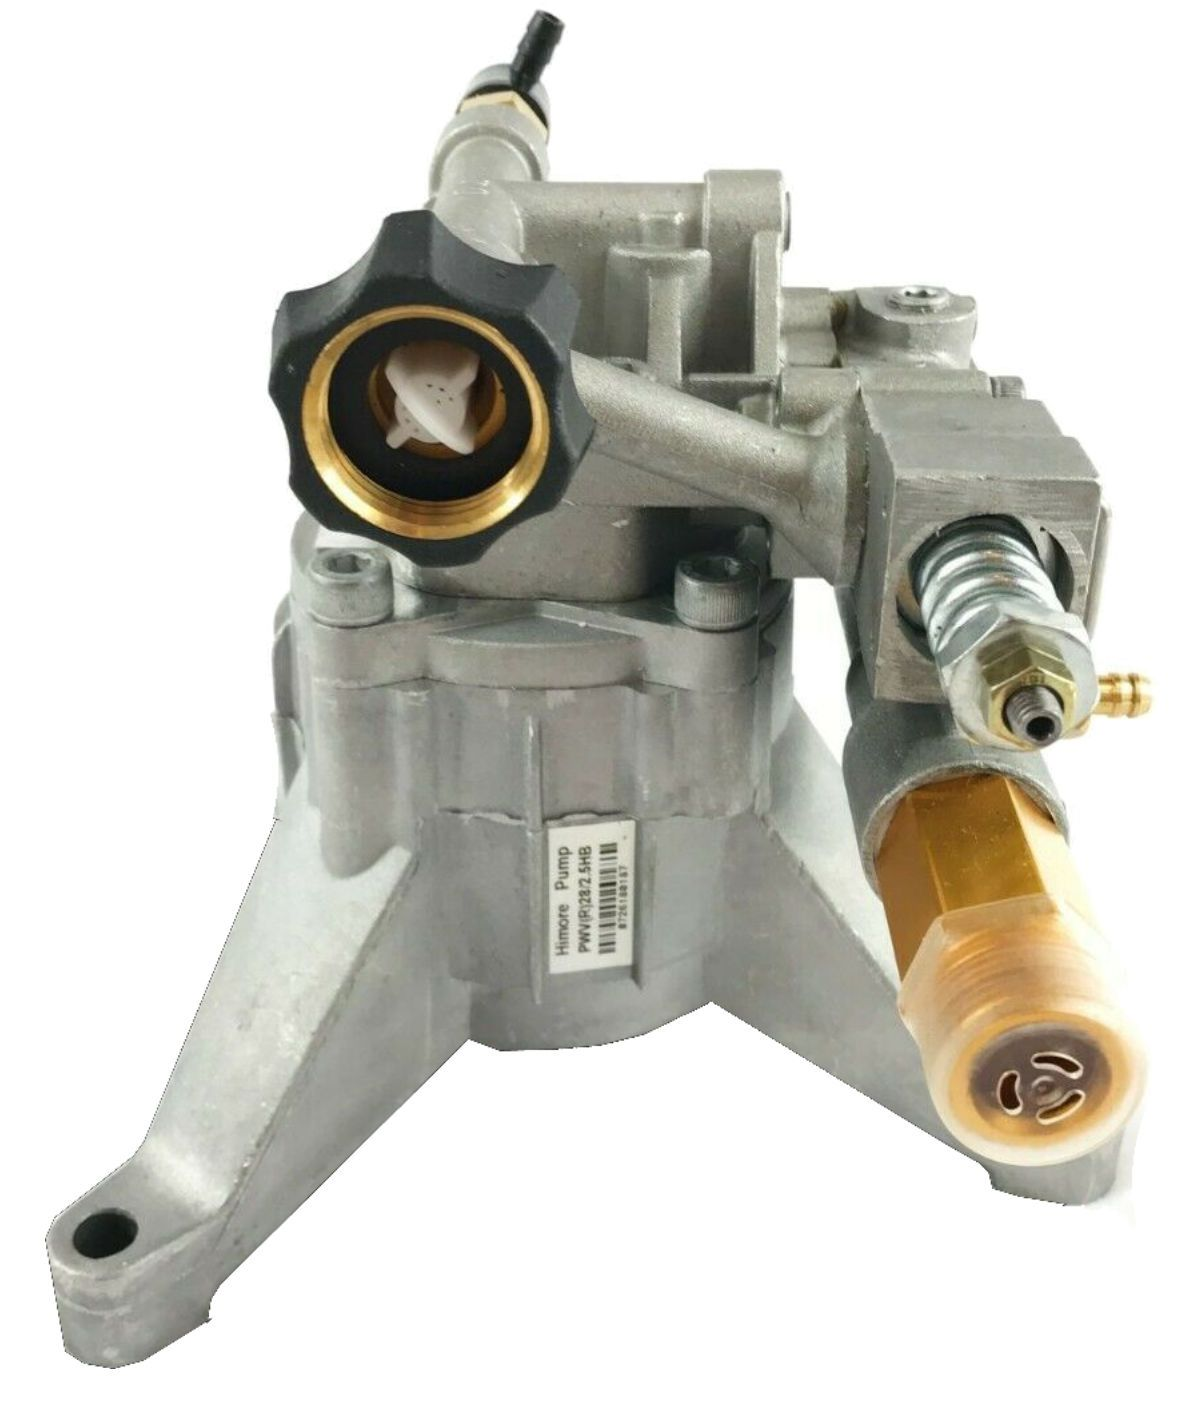 2700 PSI PRESSURE WASHER WATER PUMP Fits Briggs & Stratton 020446-1 020458-0 - AE-Power